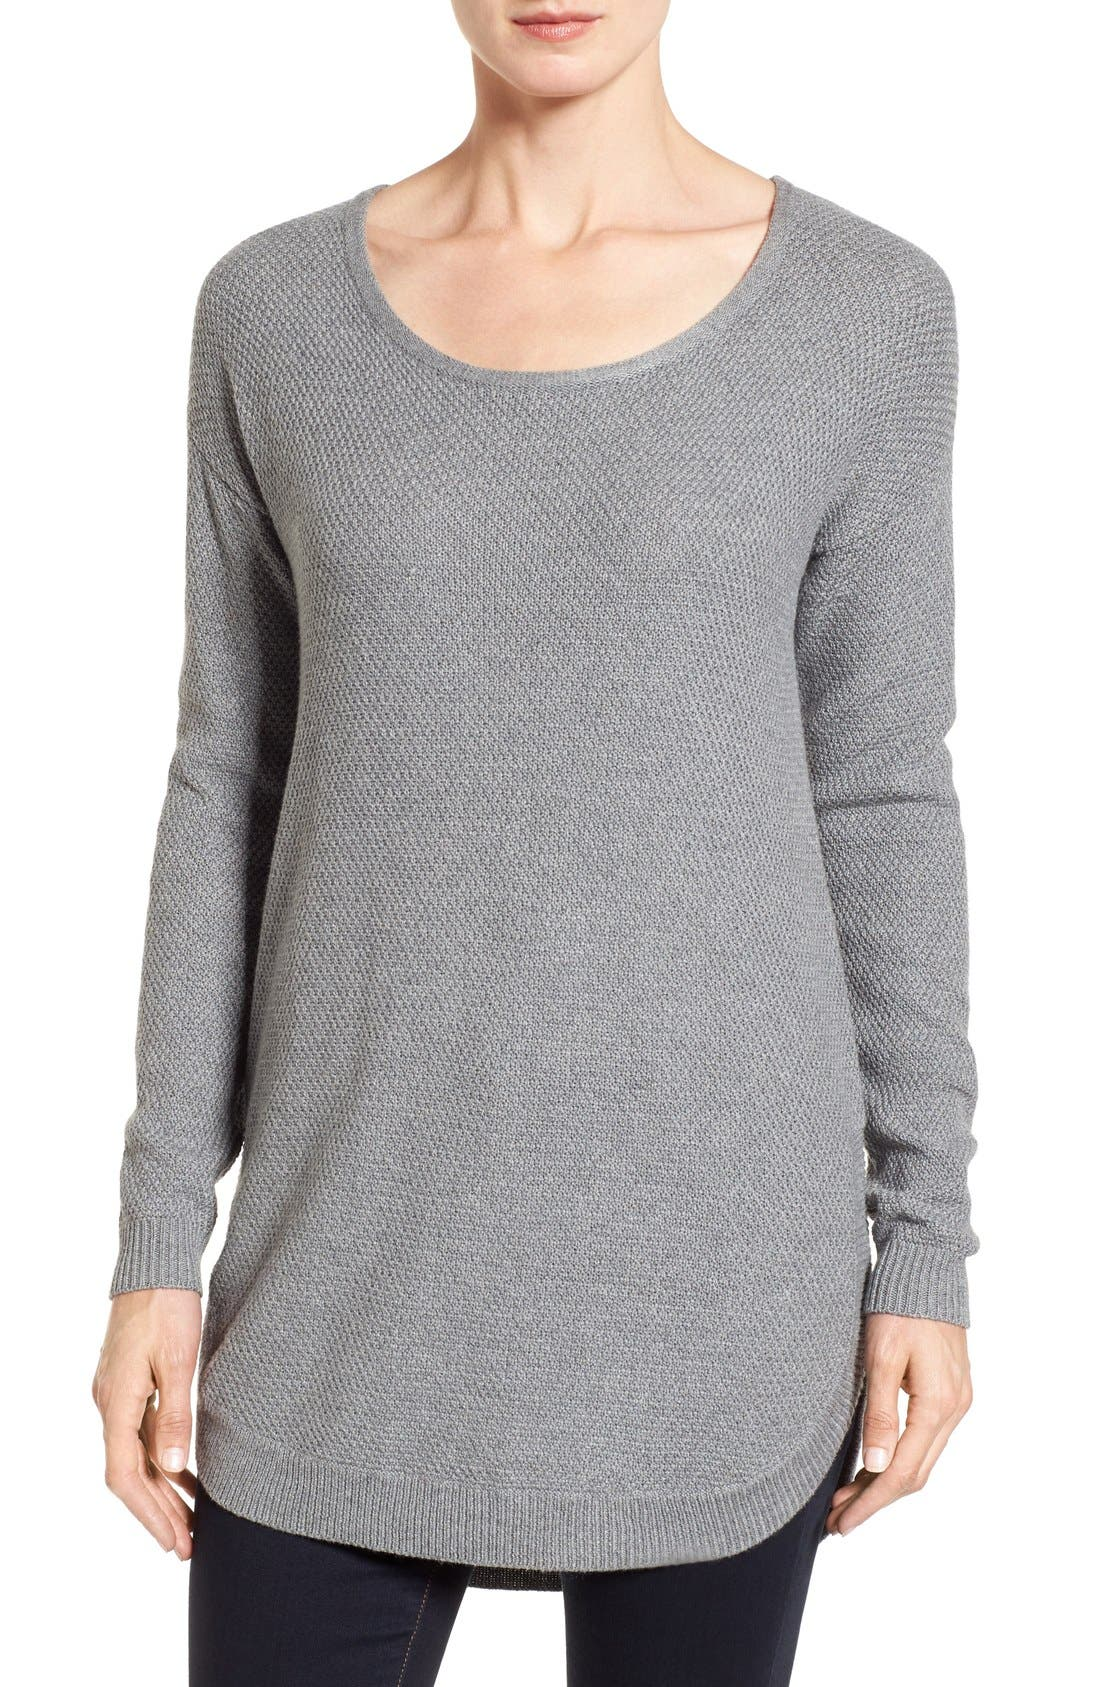 Texture Knit Tunic,                             Main thumbnail 1, color,                             Grey Texture Pattern